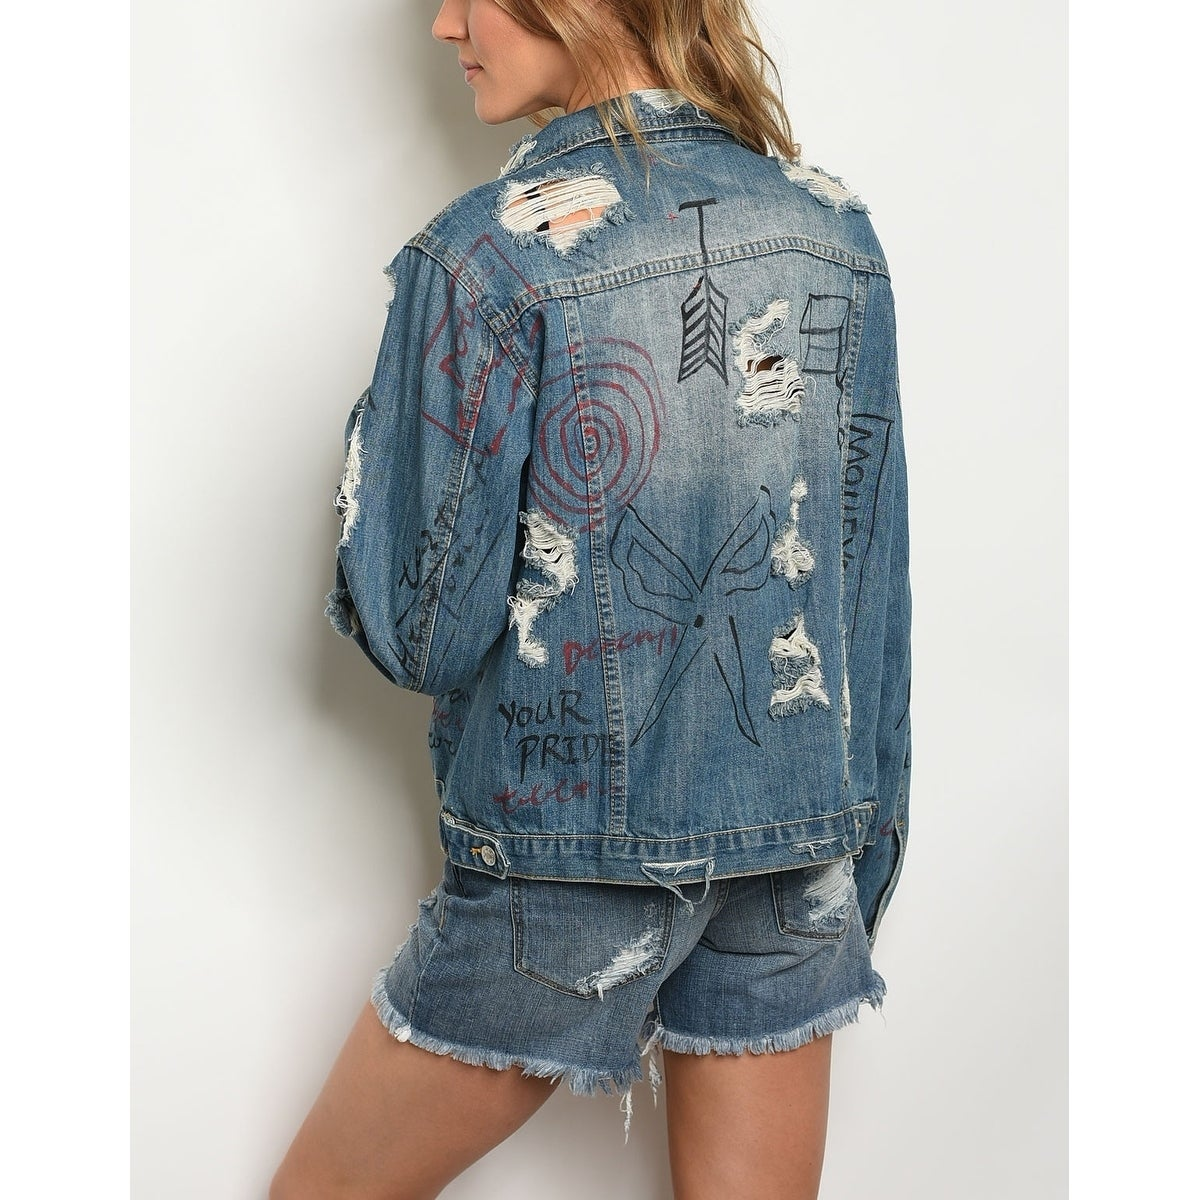 683f72b5f7 Shop JED Women's Oversized Distressed Graffiti Denim Jacket - Free Shipping  Today - Overstock - 21932650